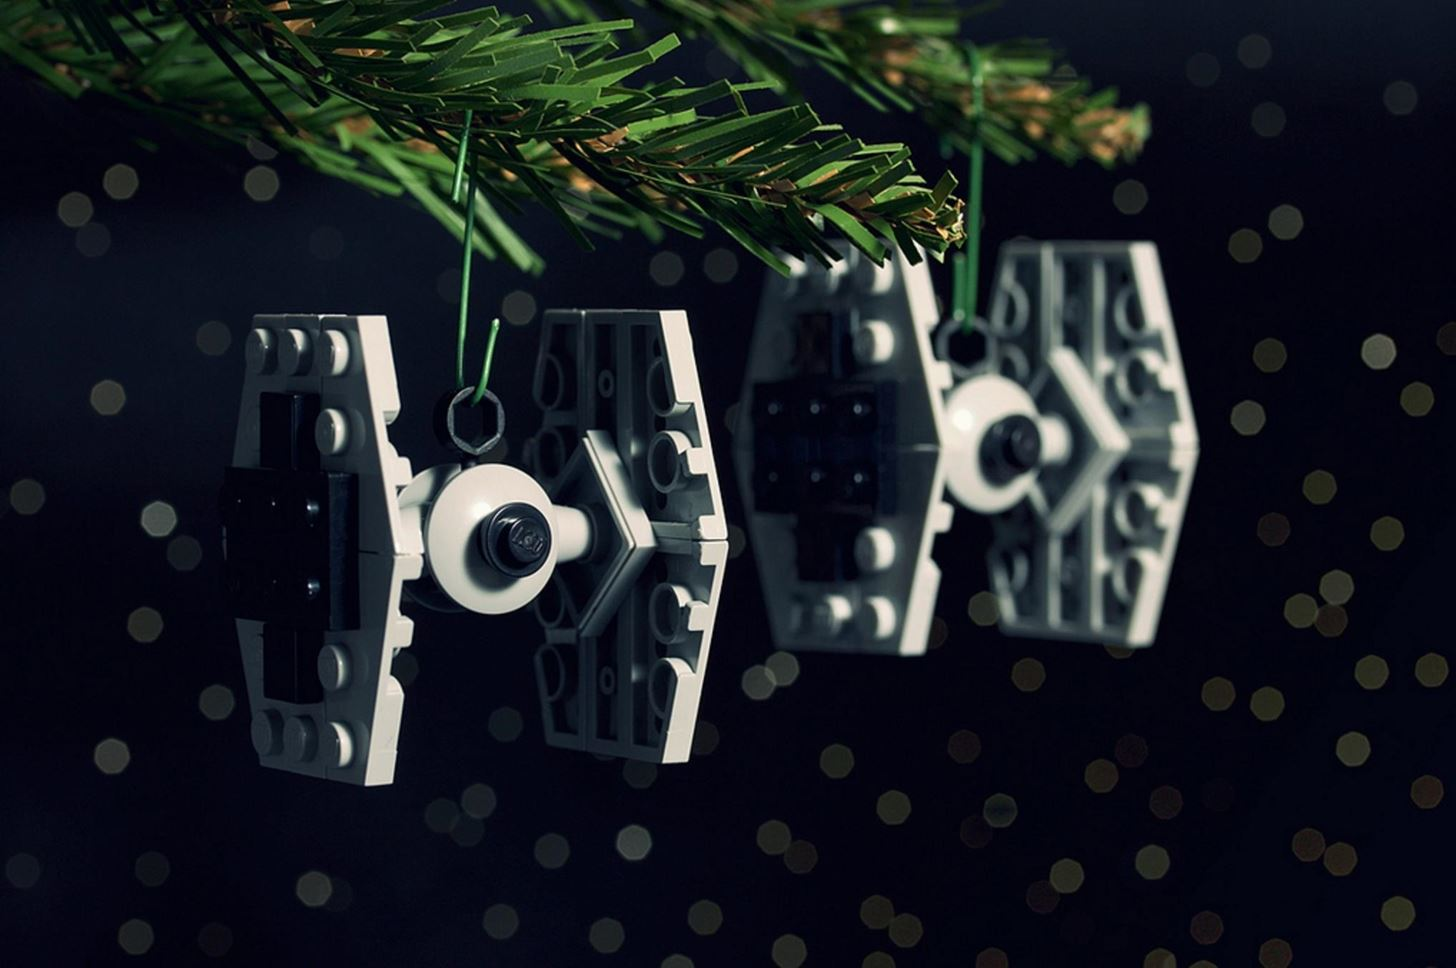 lego tie fighter ornament - Star Wars Christmas Decorations